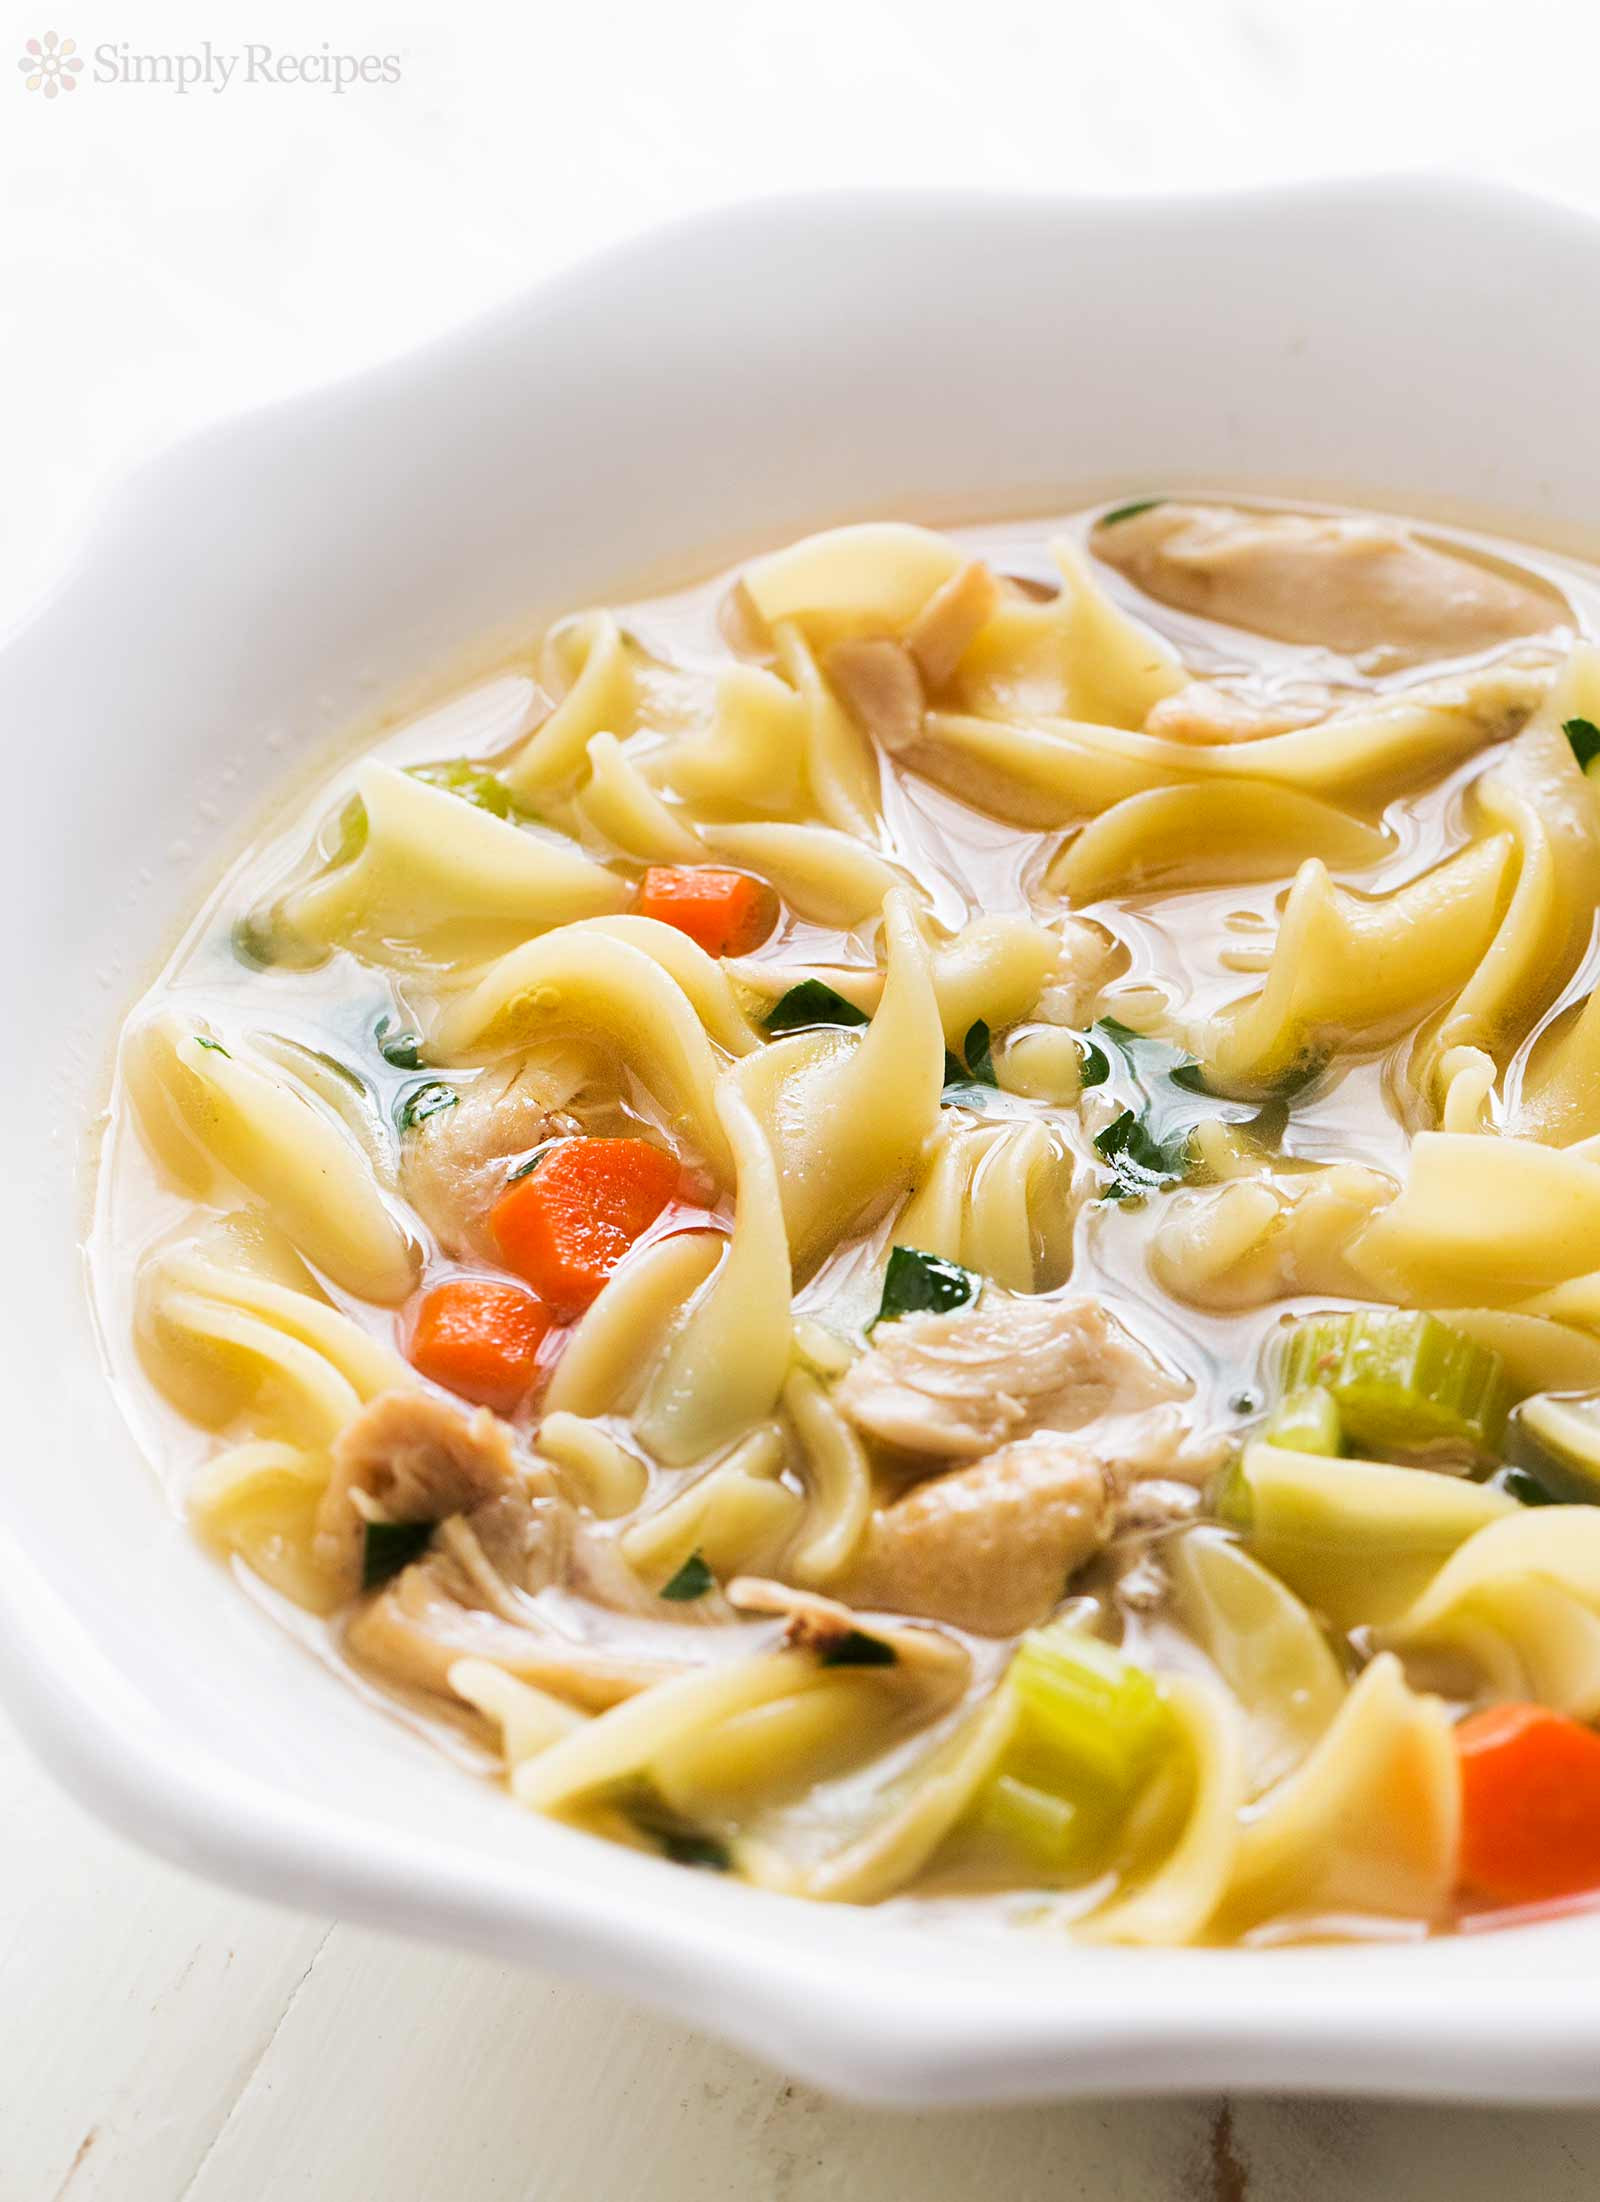 Chicken And Noodles Recipe  Homemade Chicken Noodle Soup Recipe